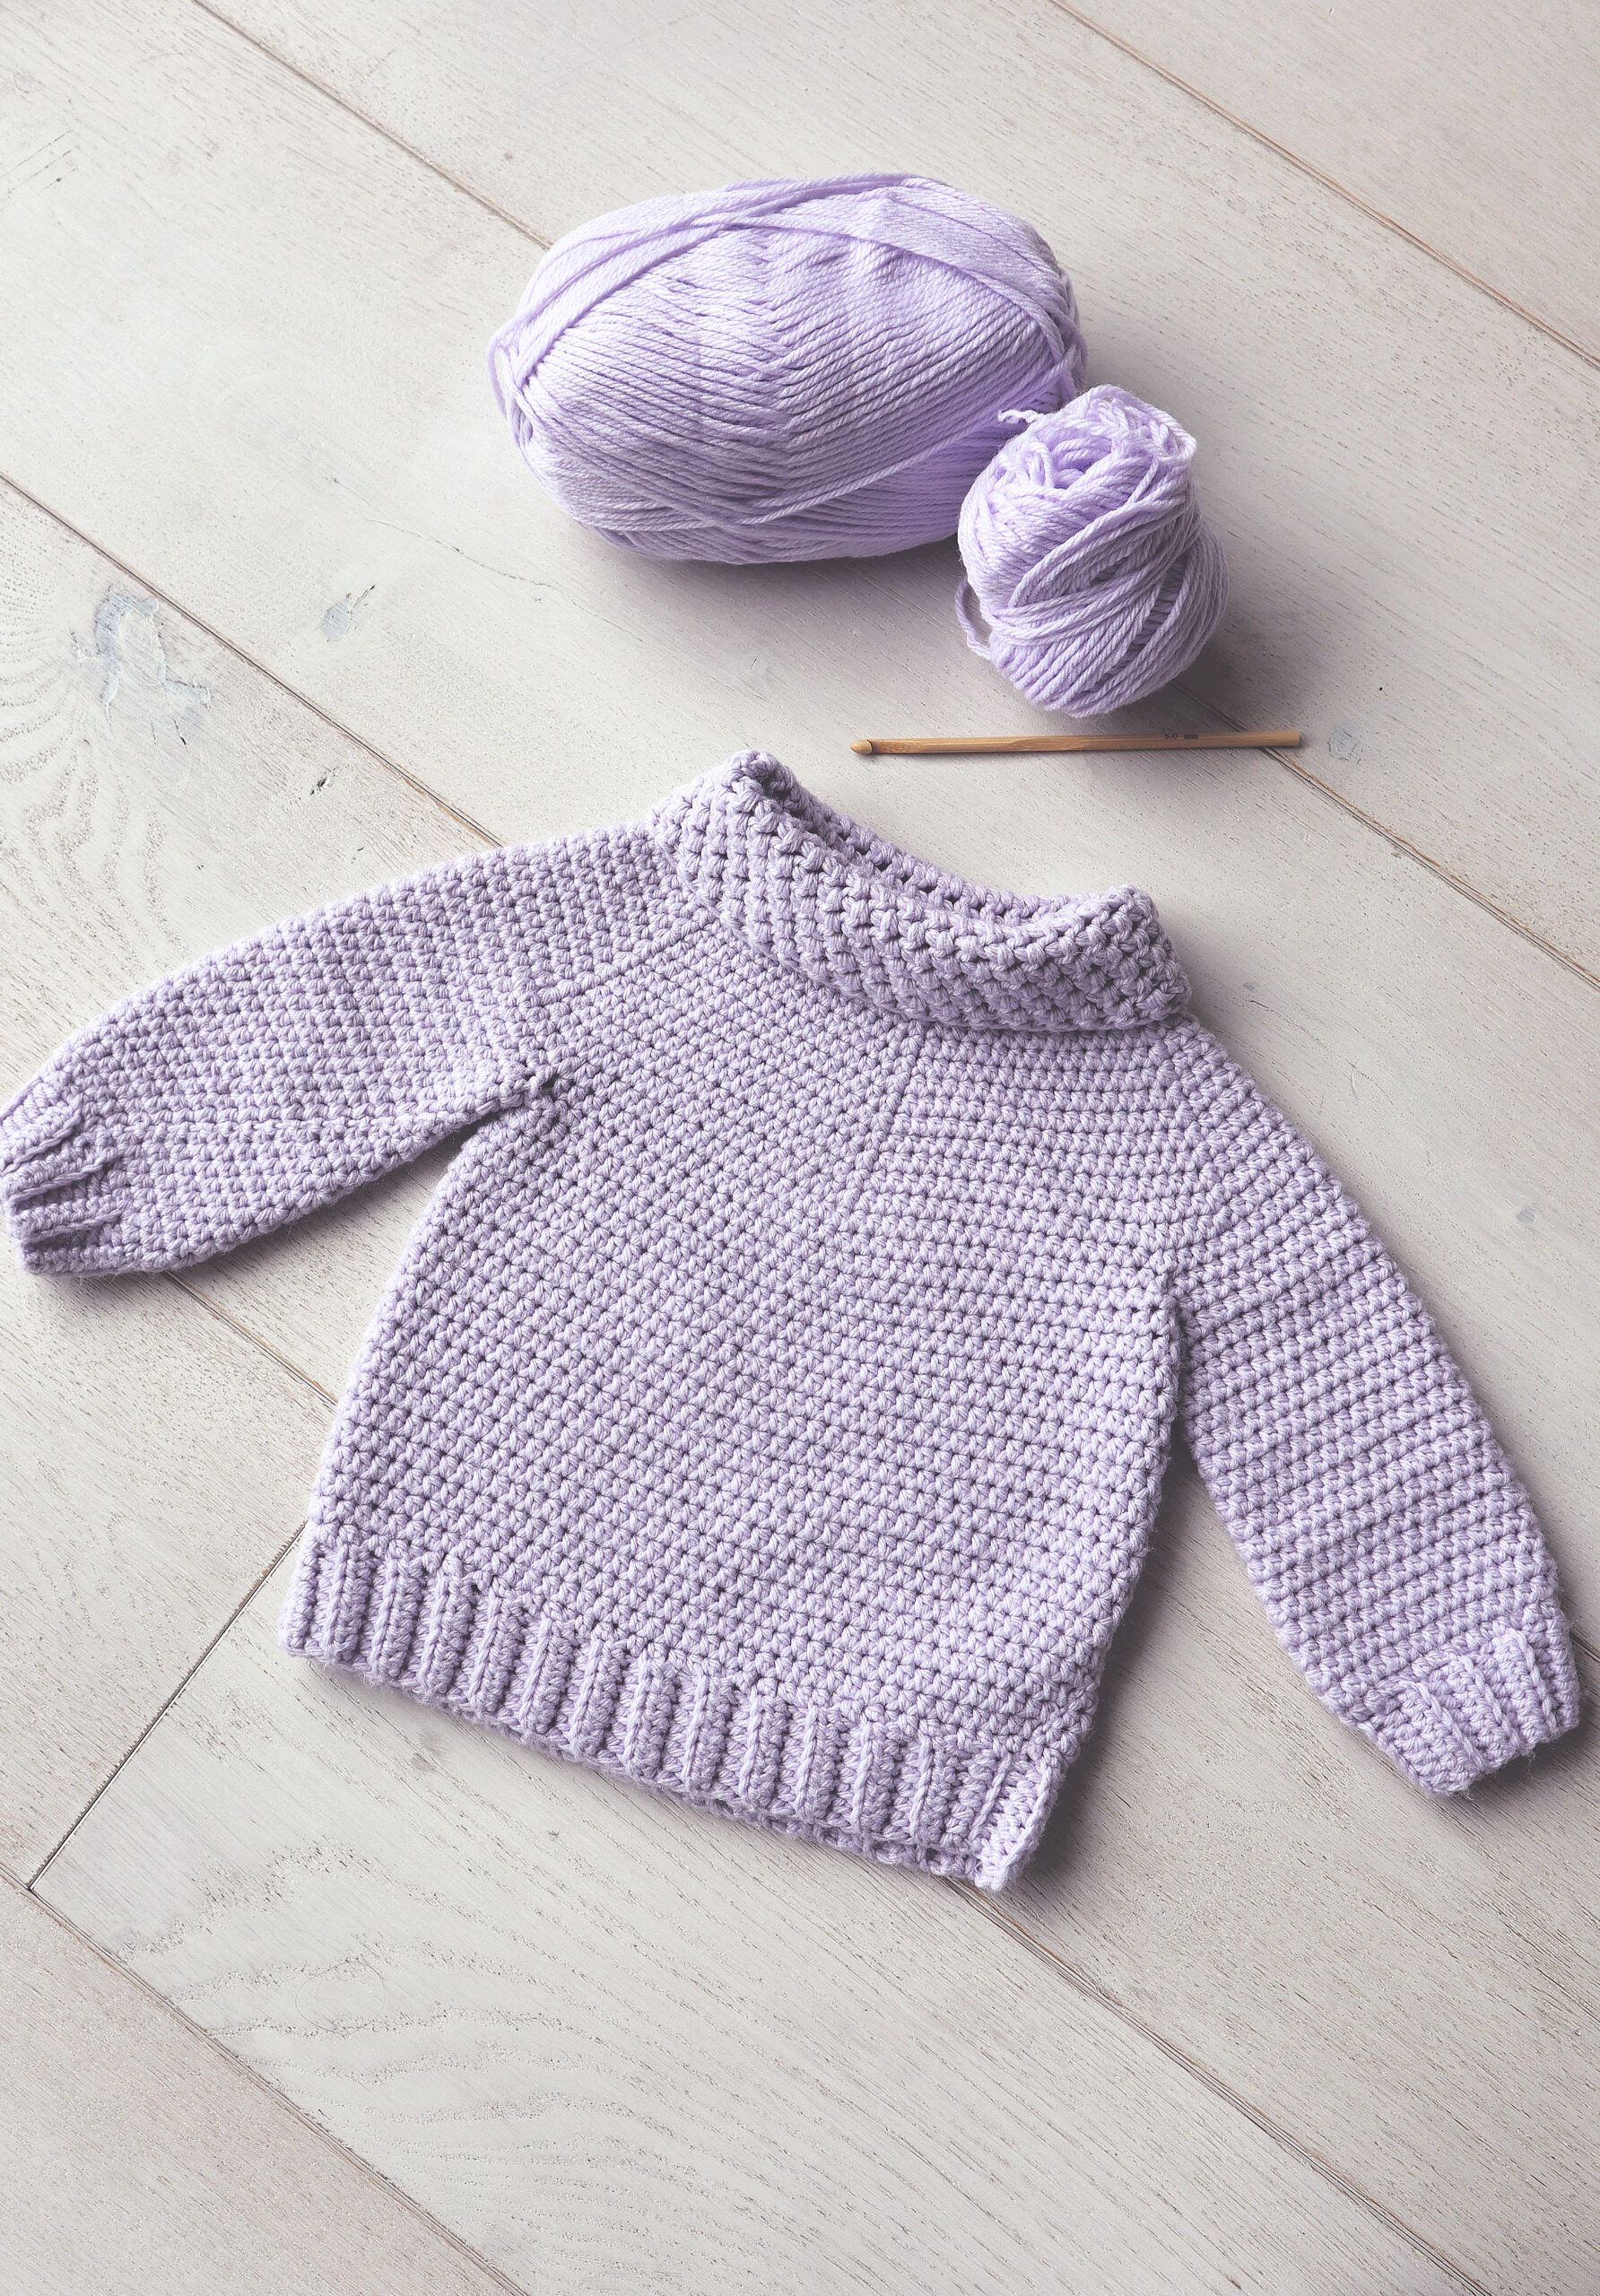 The Gumdrop Sweater Crochet Baby Pullover Pattern The Snugglery